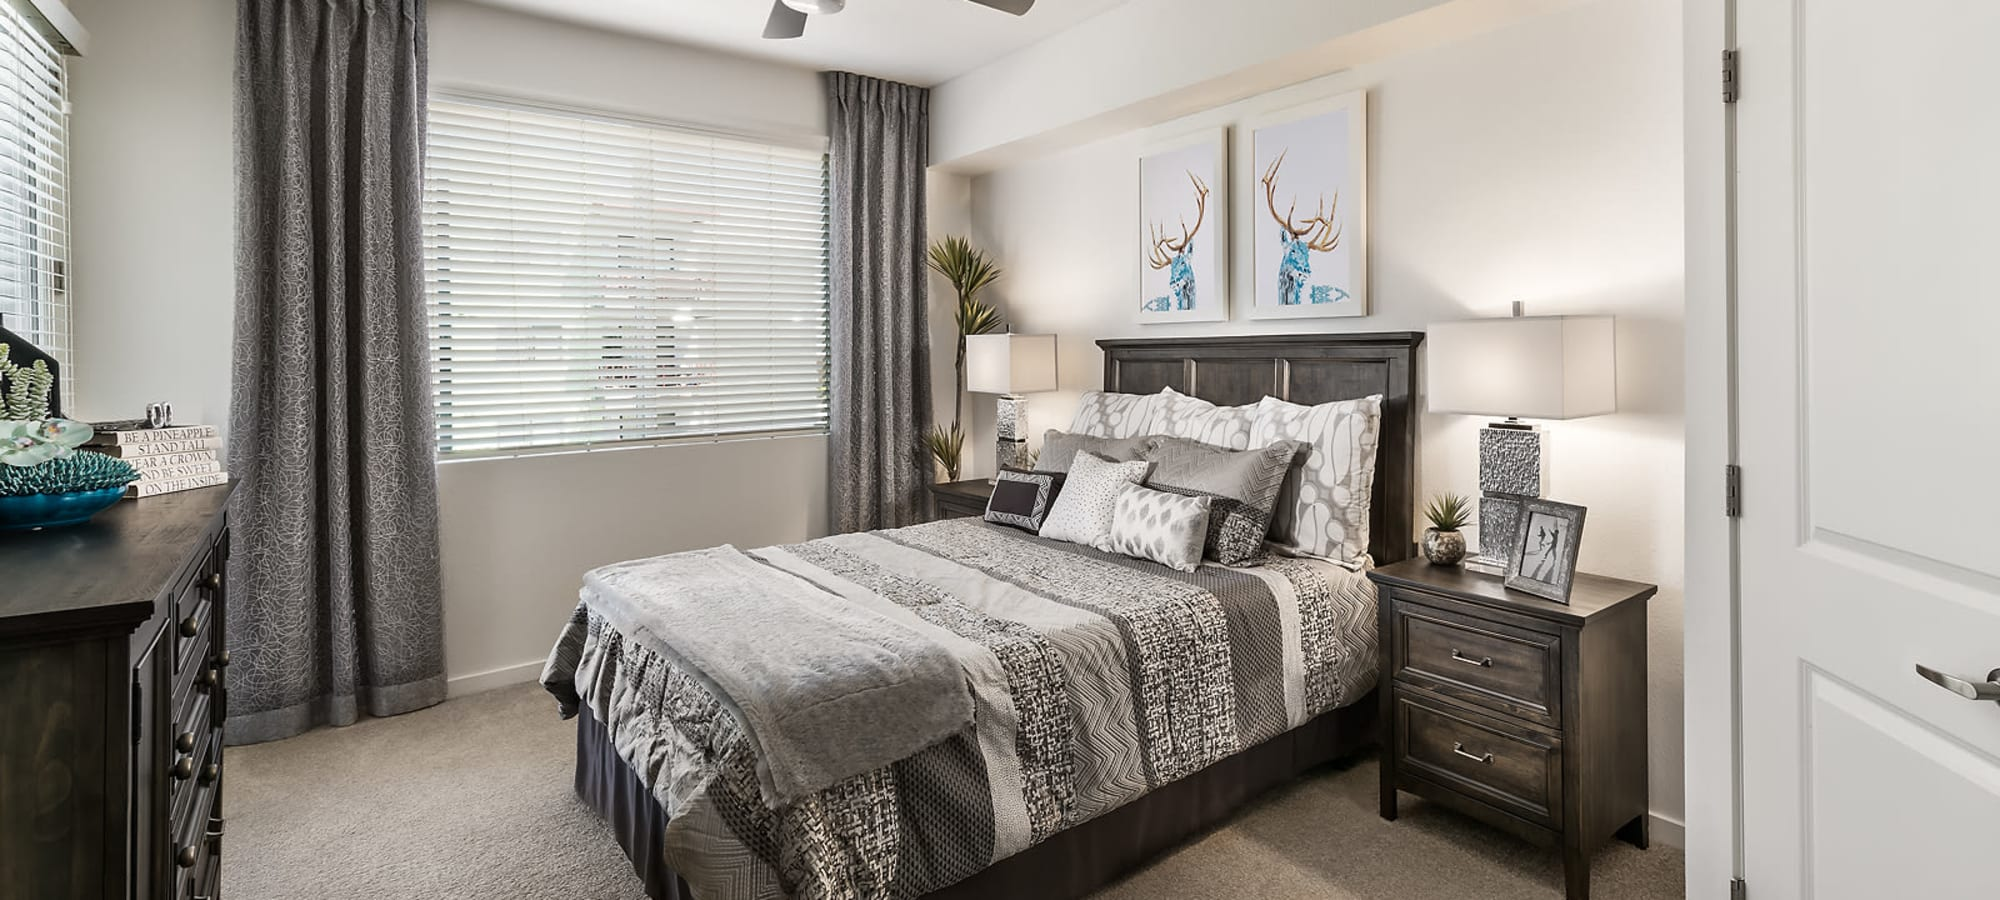 Comfortable bedroom at Park Place at Fountain Hills in Fountain Hills, Arizona